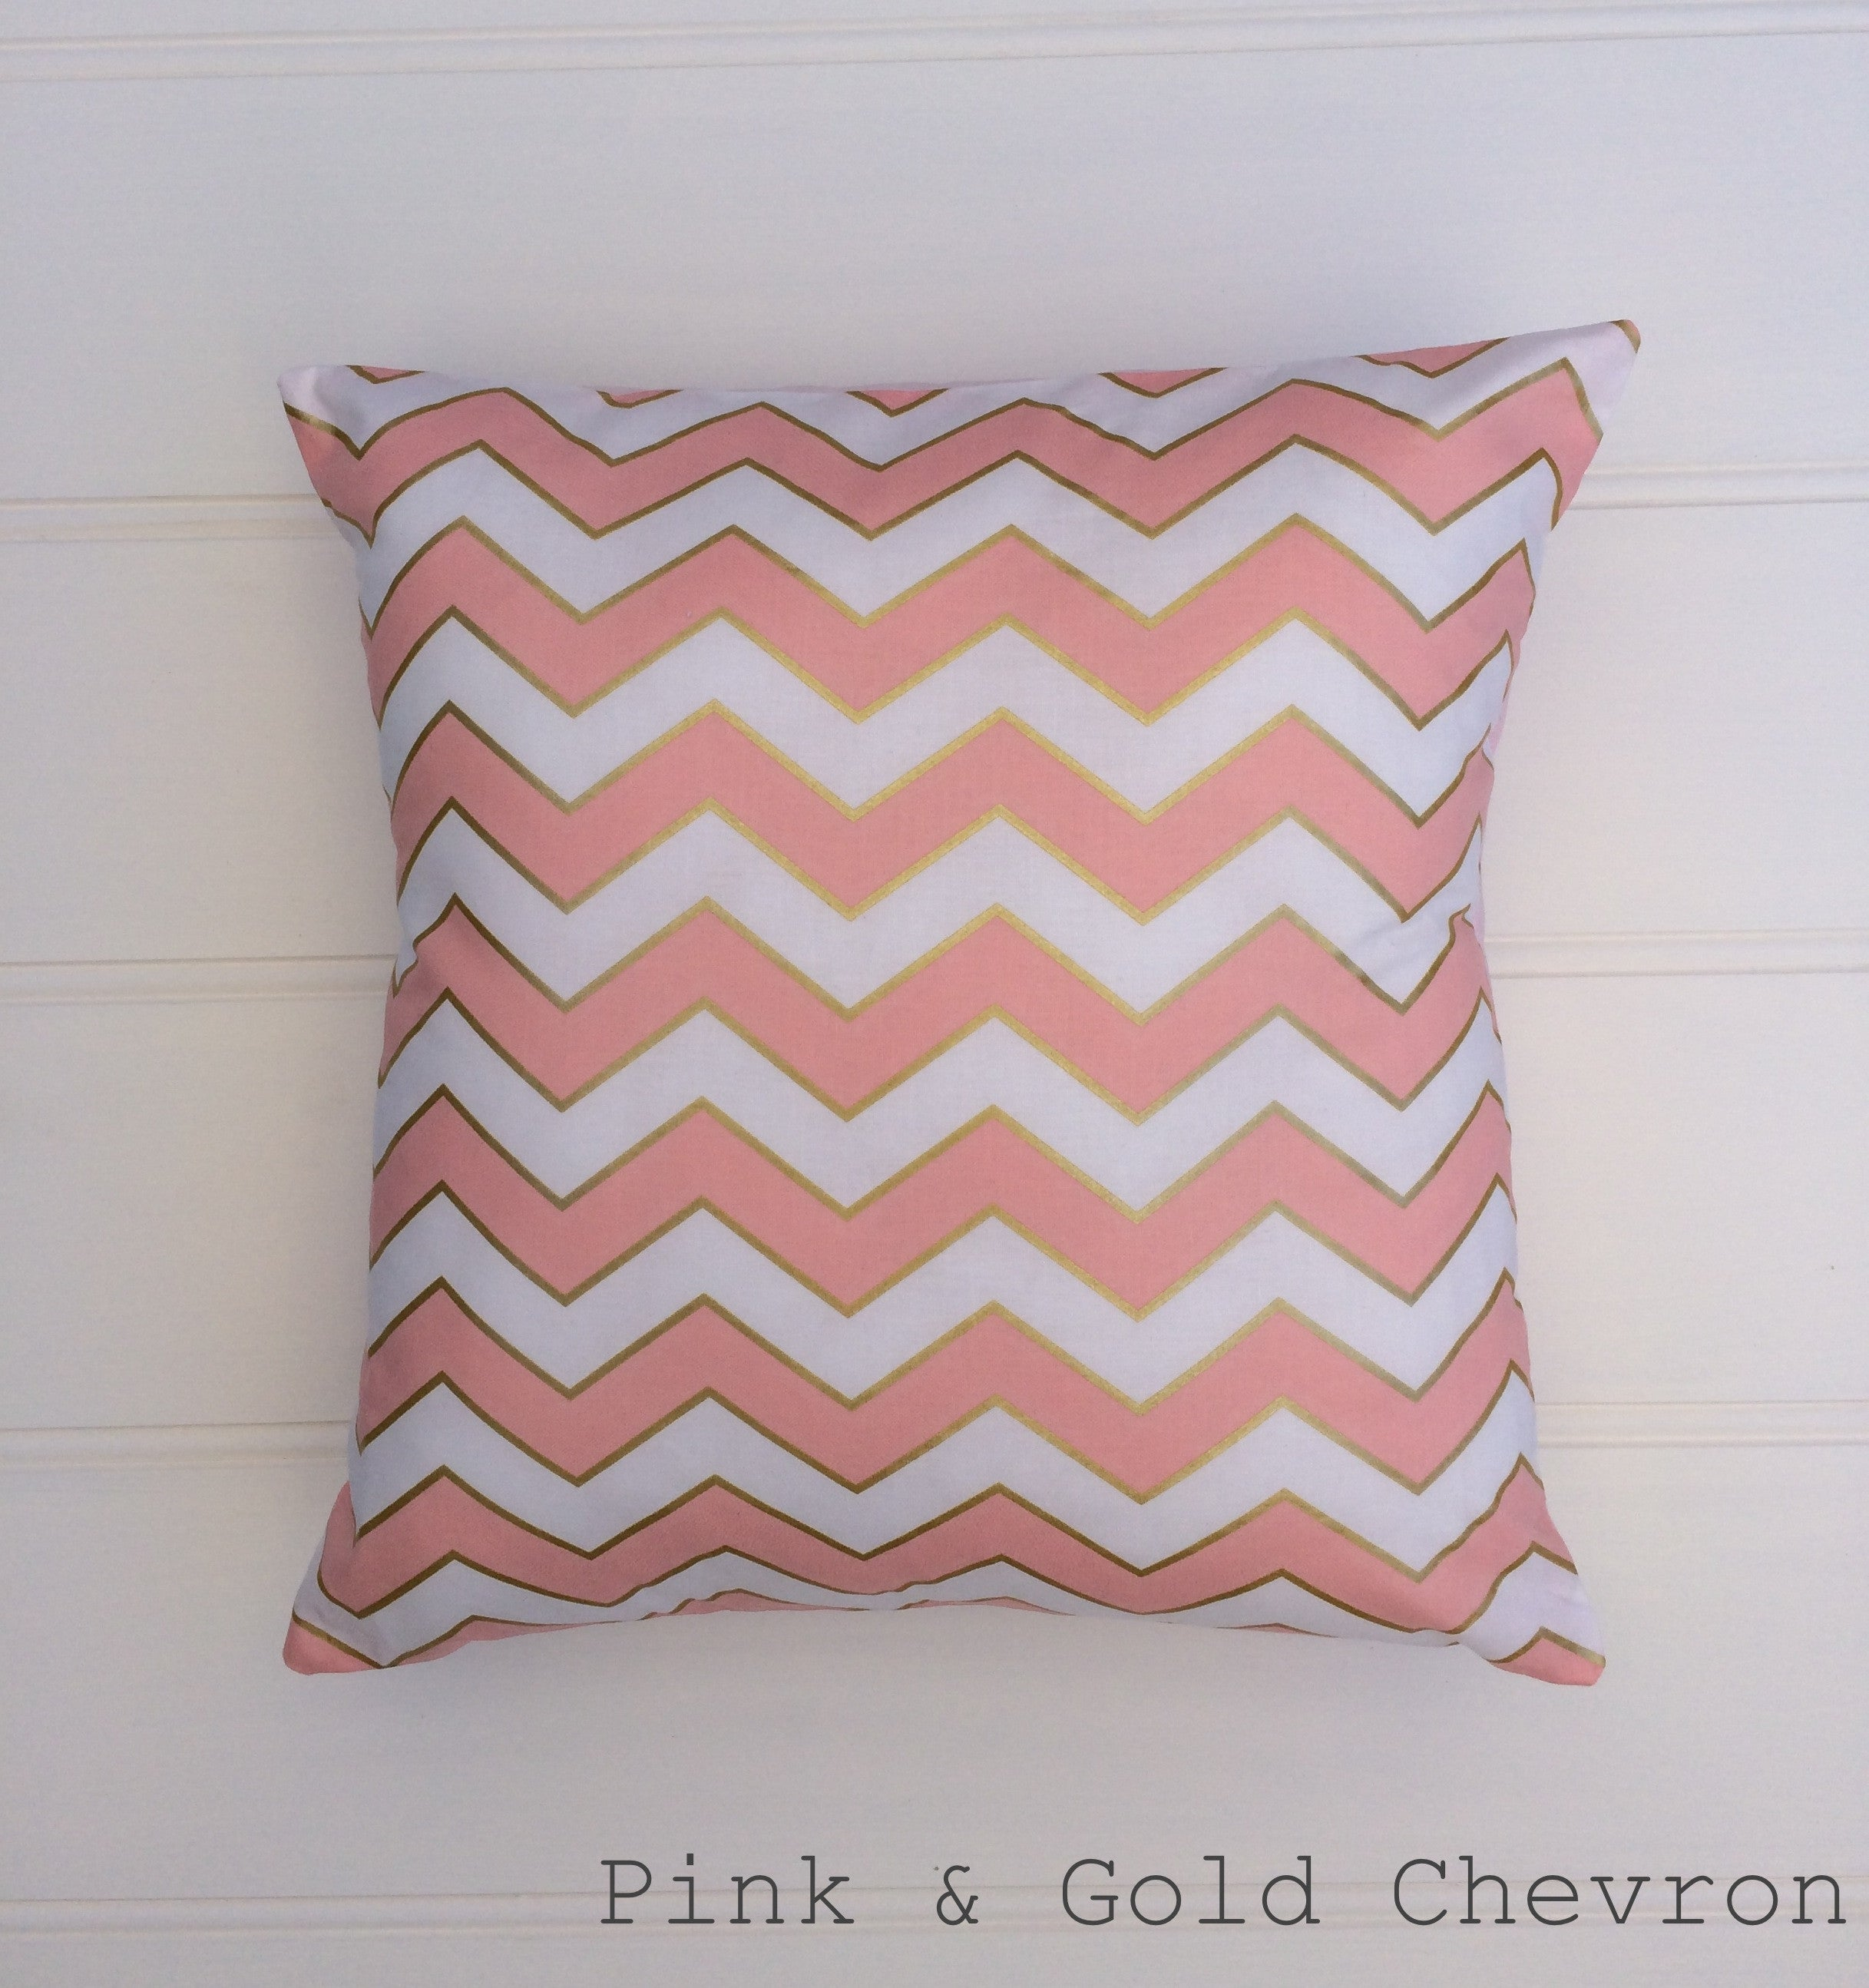 Pink & Gold Chevron Cushion Cover